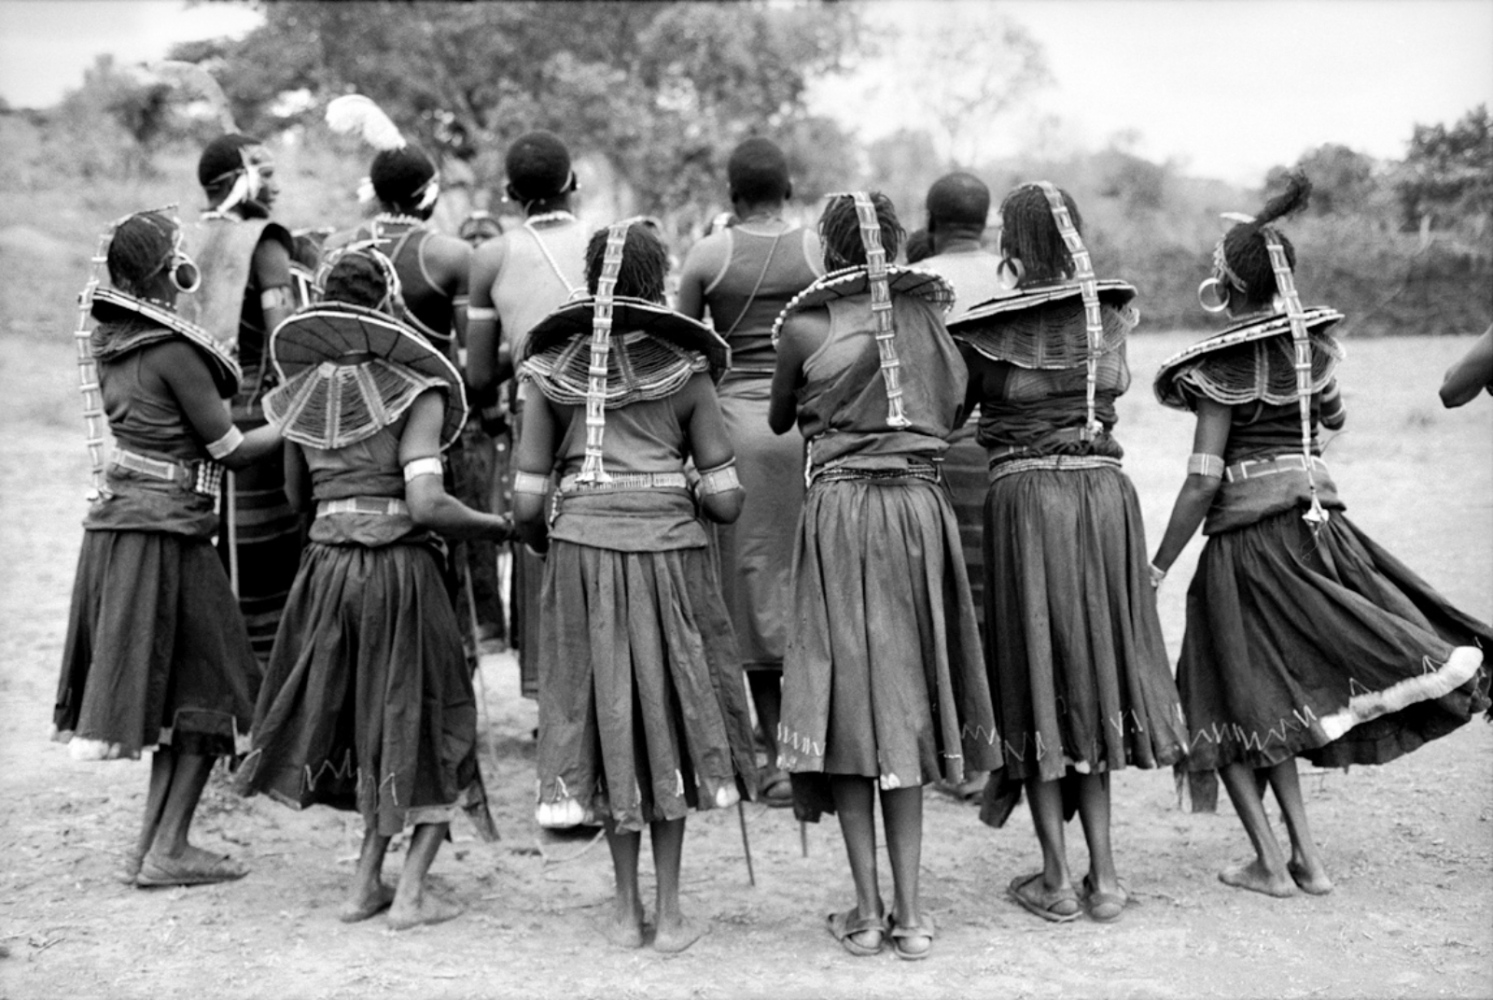 The Backs of Dancing Women, Mugie Ranch, Kenya, August 2002